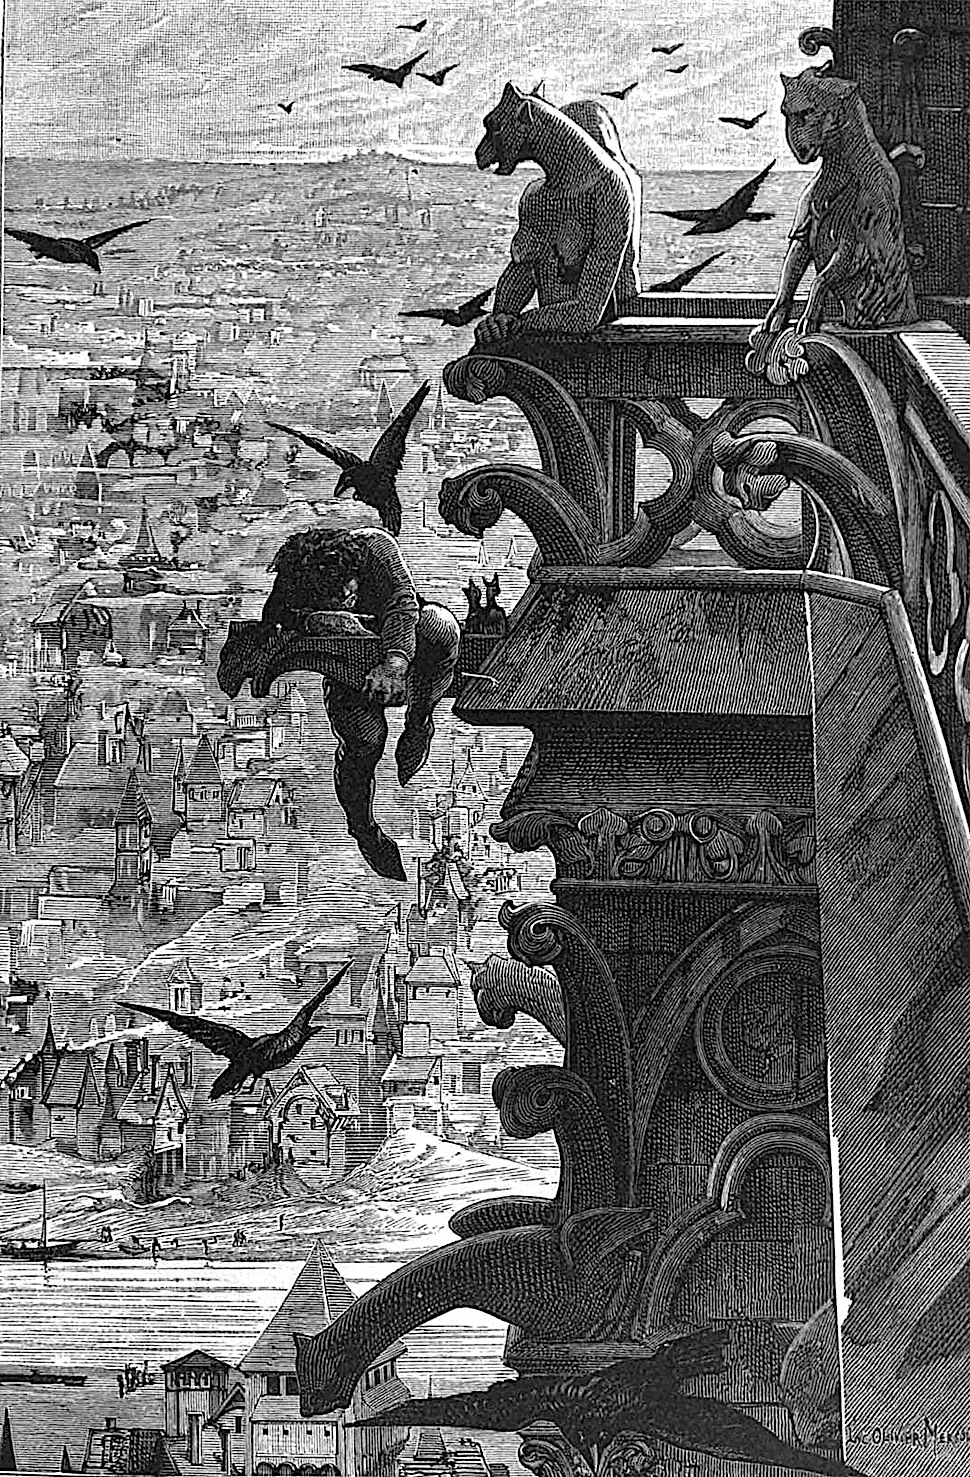 an illustration from The Hunchback of Notre Dame by Victor Hugo, the hunchback climbing